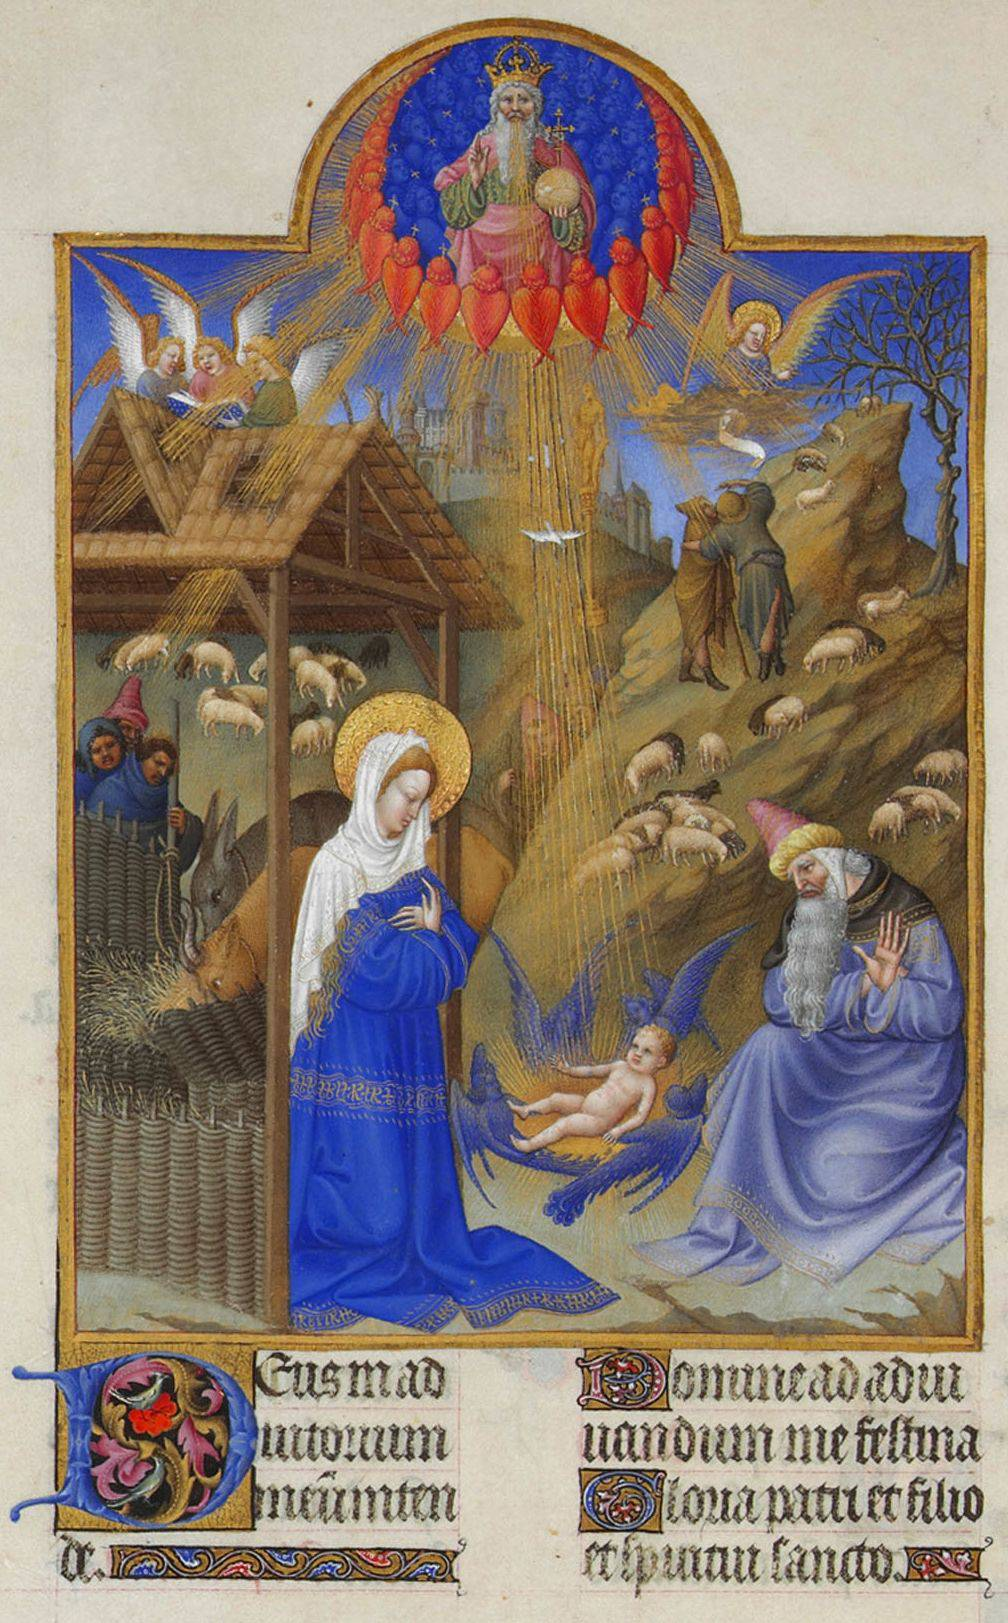 Christmas, far from being celebrated on a single day, covered twelve, from December 25th to January 6th, the feast of the Epiphany (our Three King's Day).